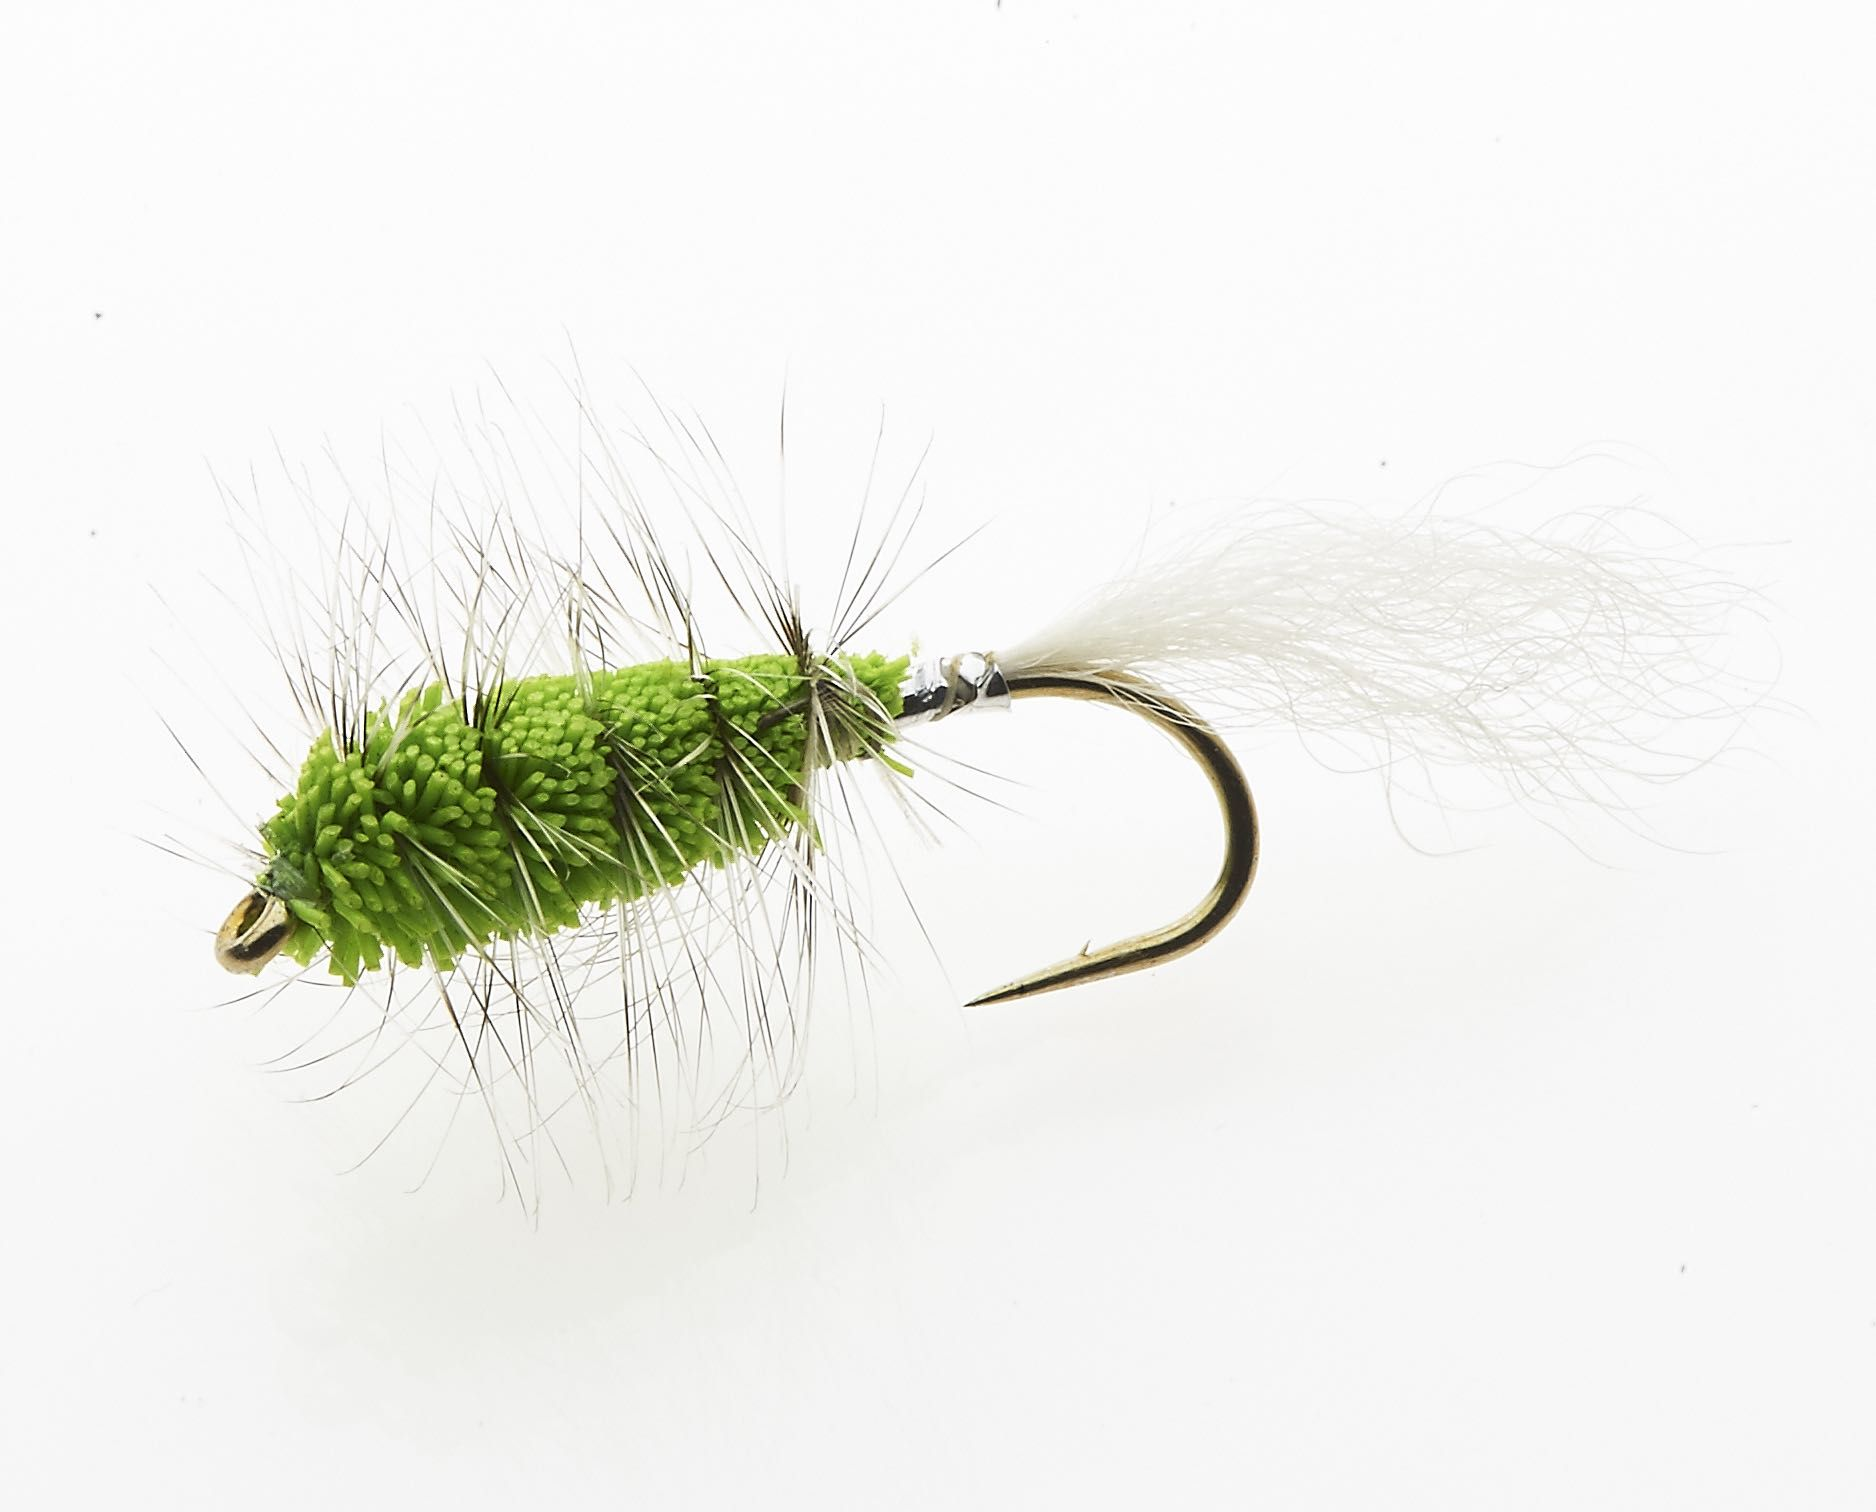 Chartreuse Bug - salmon and steelhead bug